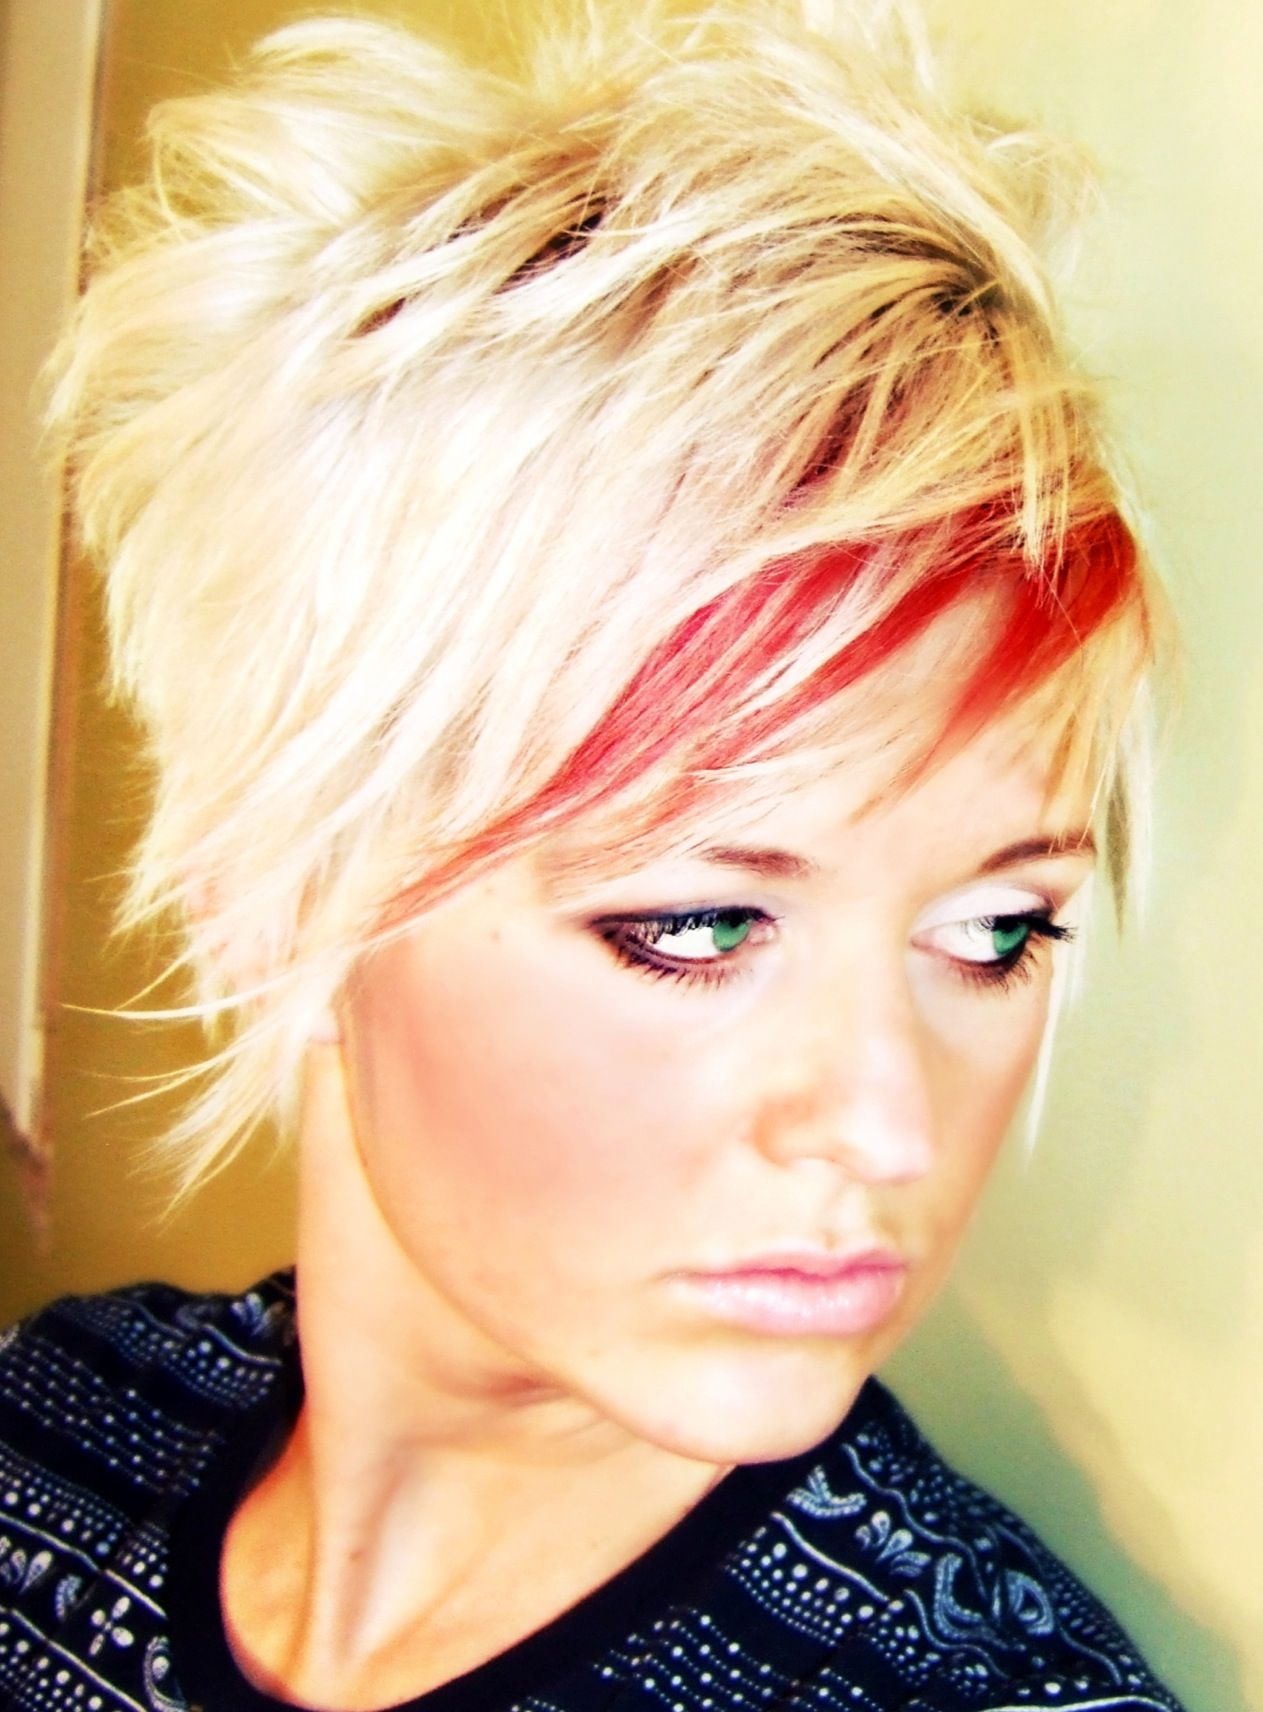 Crazy shaggy cut platinum blonde with red highlight at the bang for